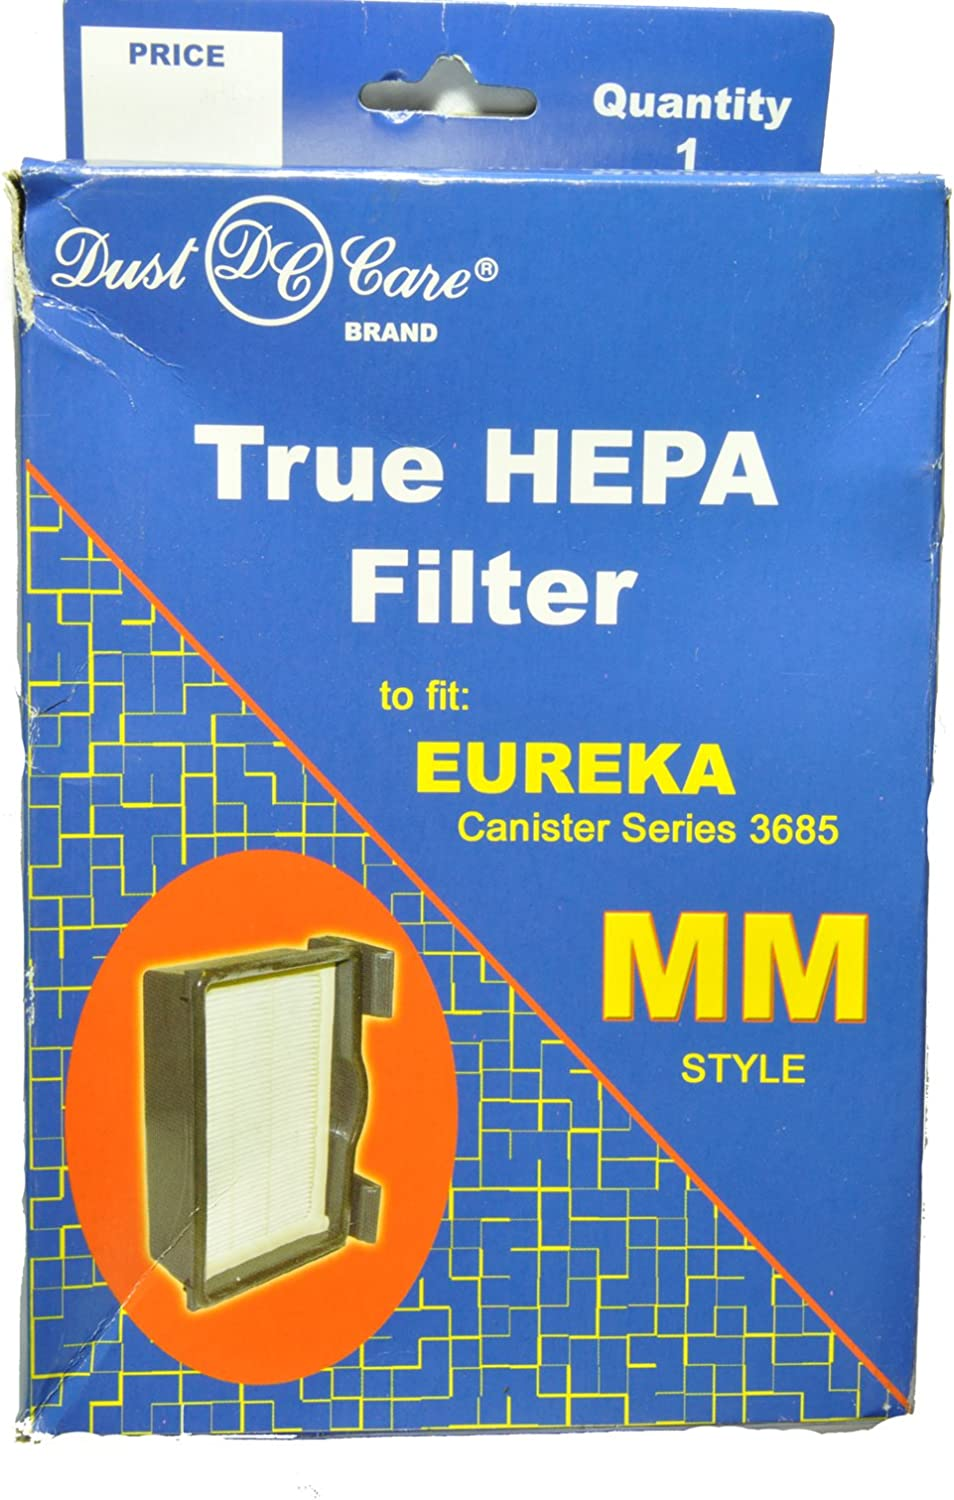 Dust Care Eureka Canister Style MM True Hepa Filter, Replacement Brand, Designed to fit Eureka Canister Series 3685 Using HF8 Style MM Hepa Filters